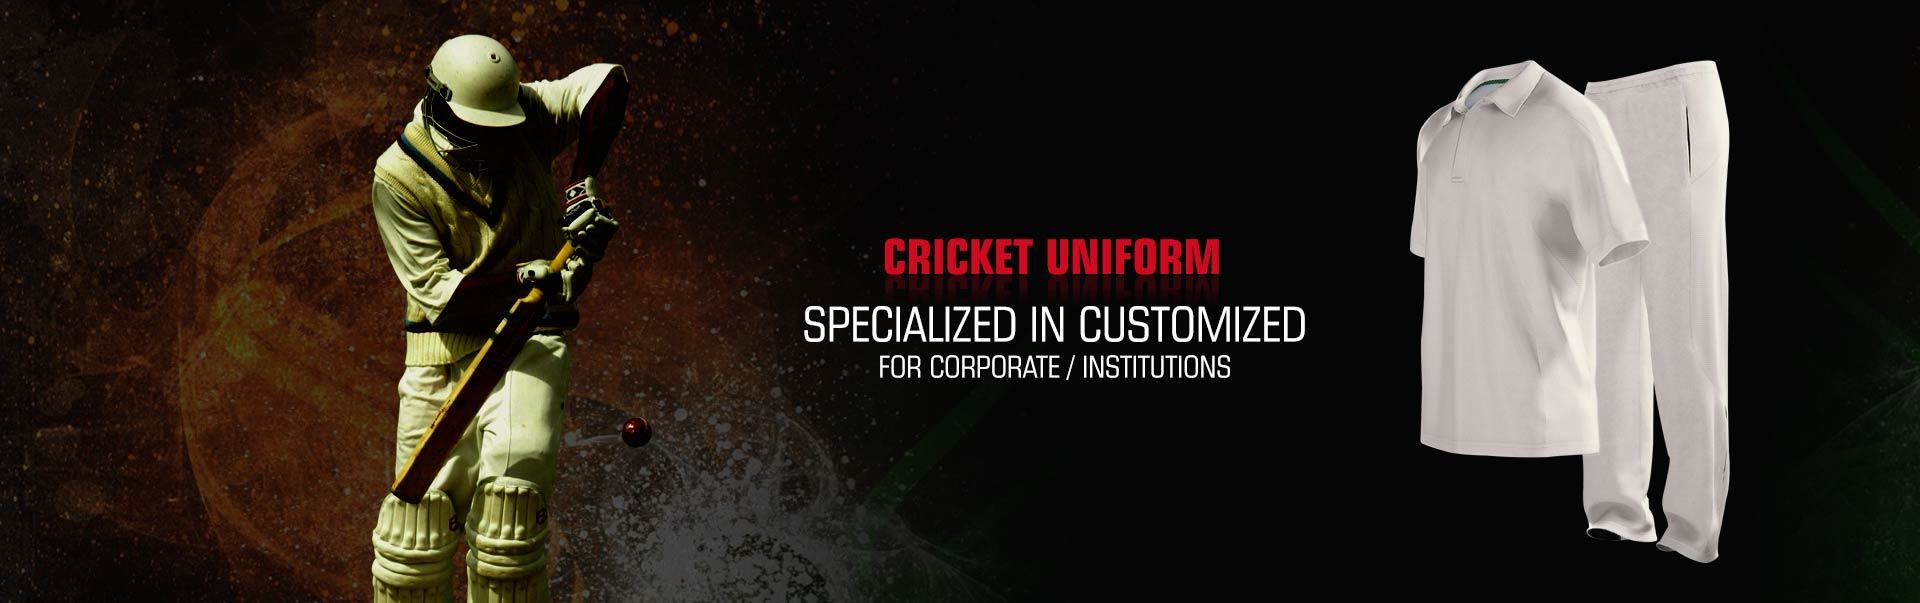 Cricket Uniform Wholesaler, Suppliers in Corona